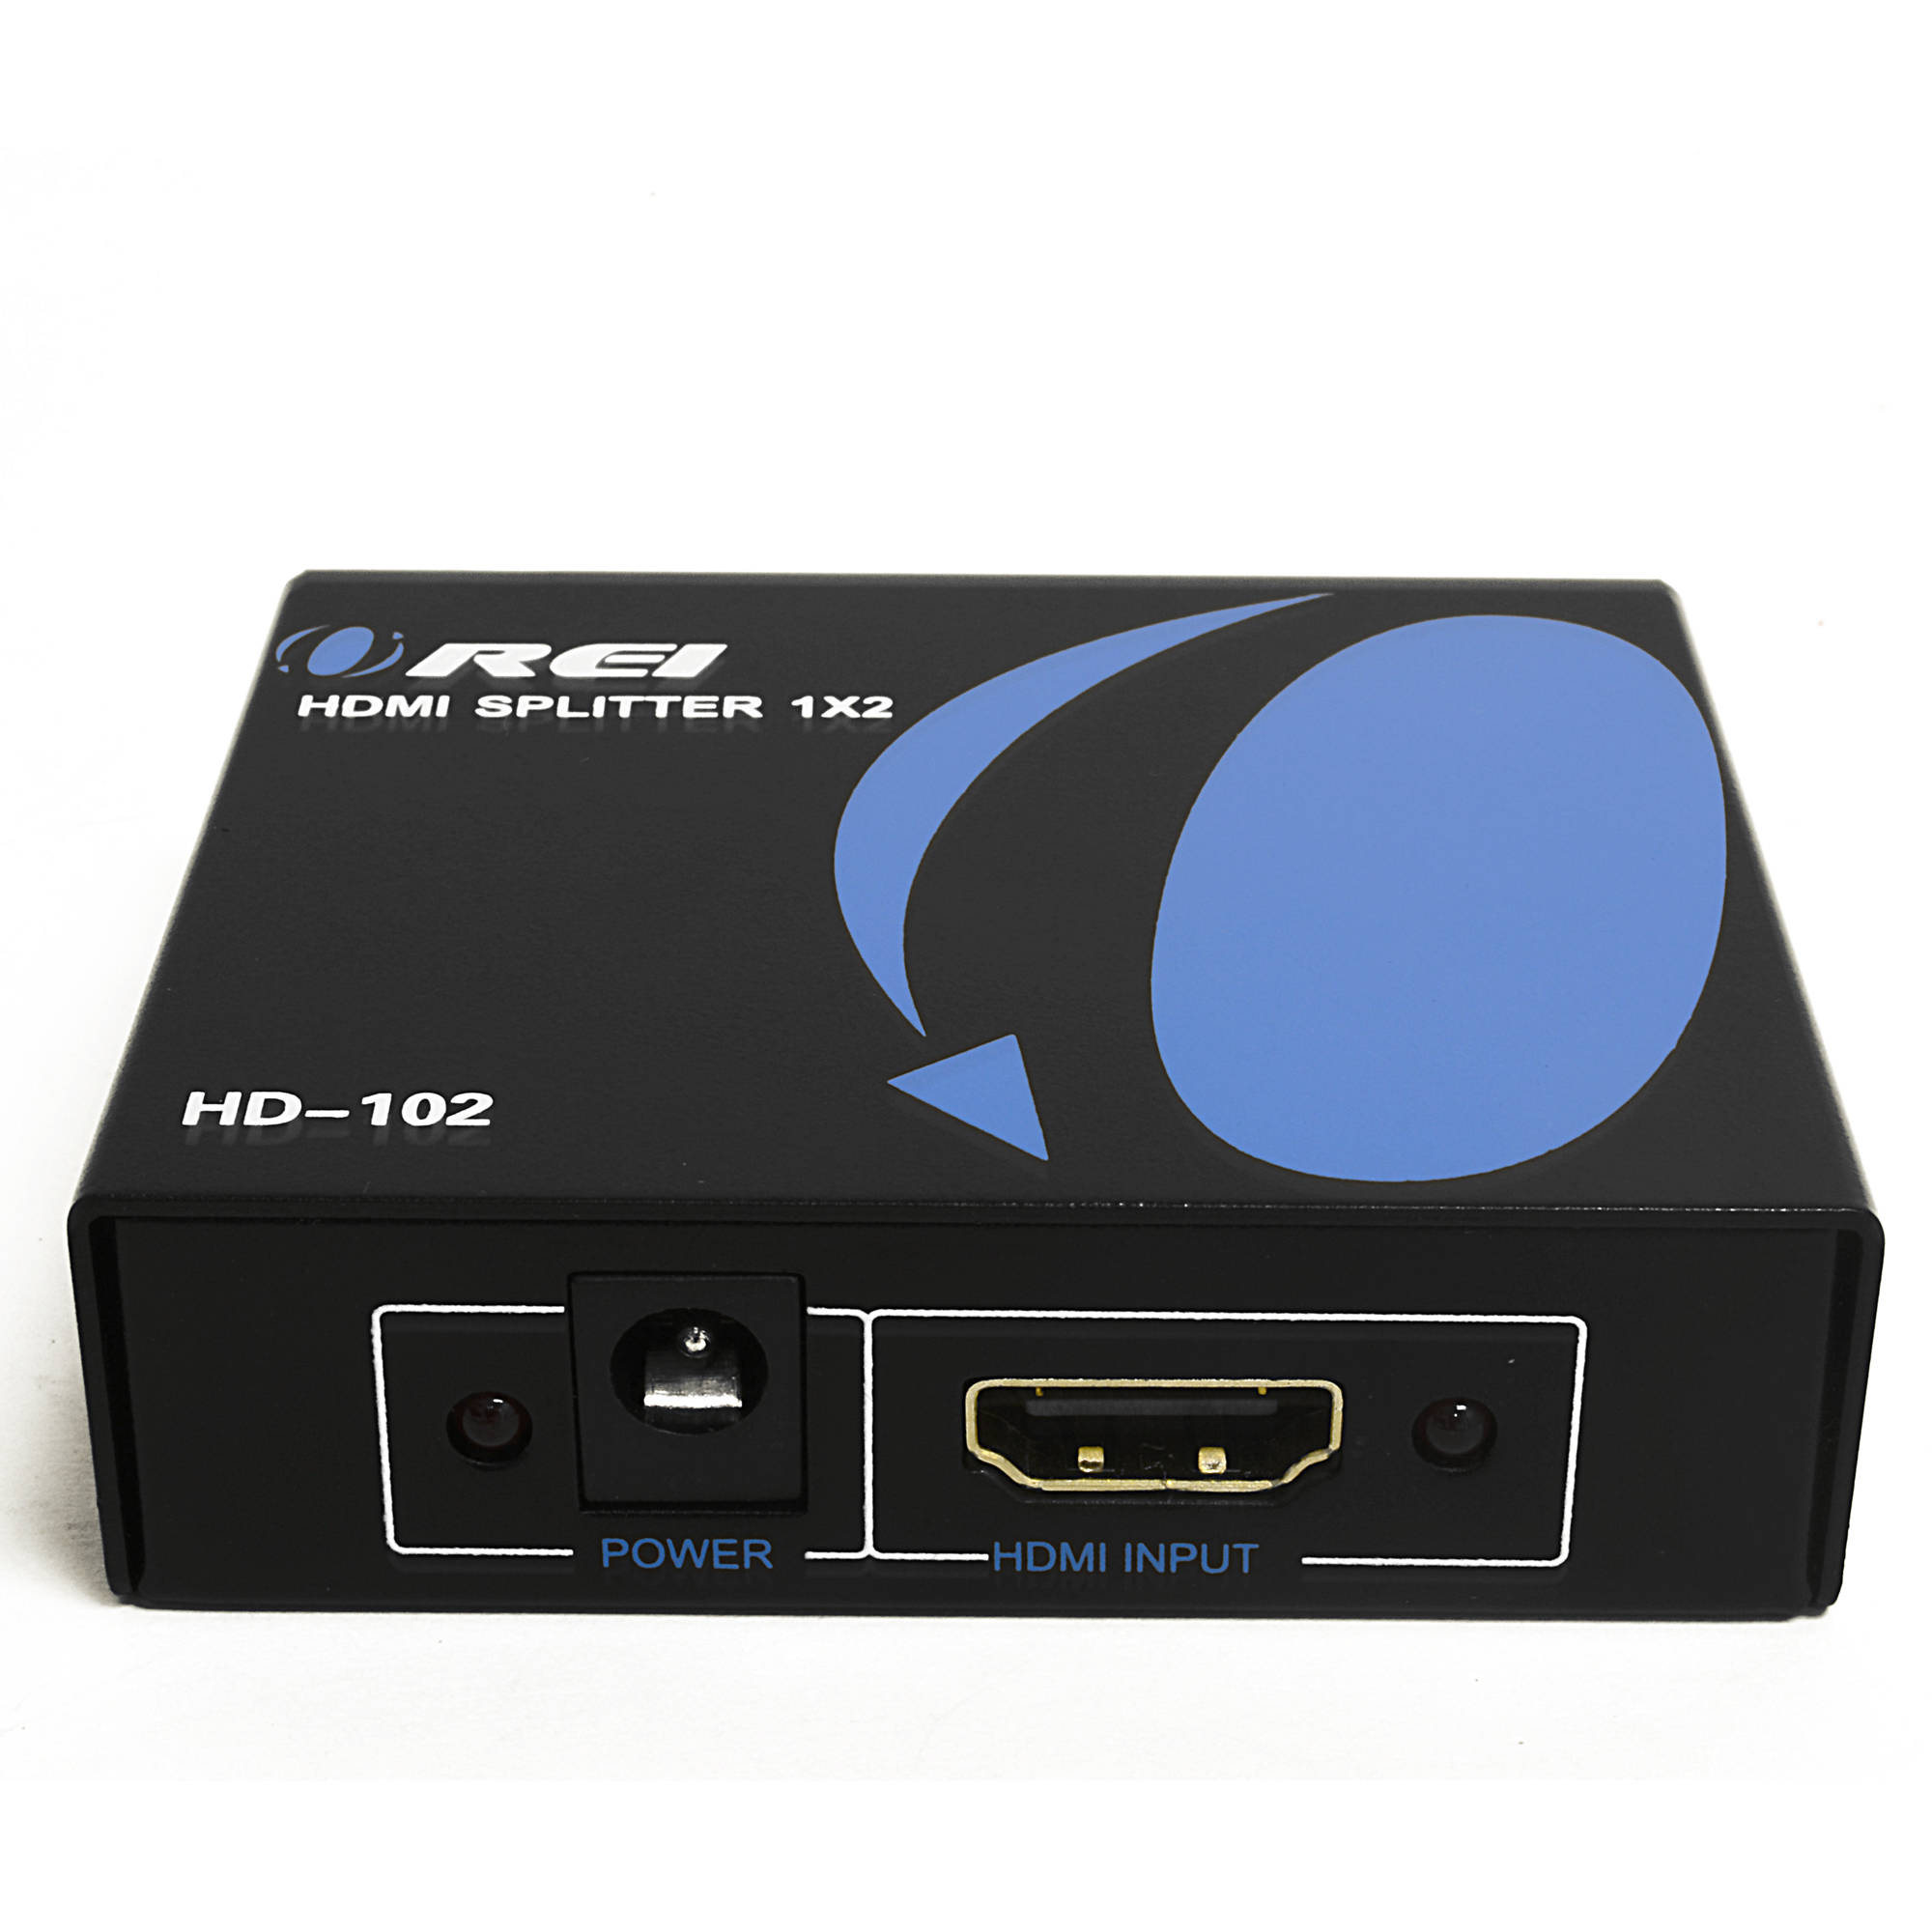 OREI HD-102 1x2 1 Port HDMI Powered Splitter Ver 1.3 Certified for Full HD 1080P and 3D Support (1 Input To 2 Outputs)